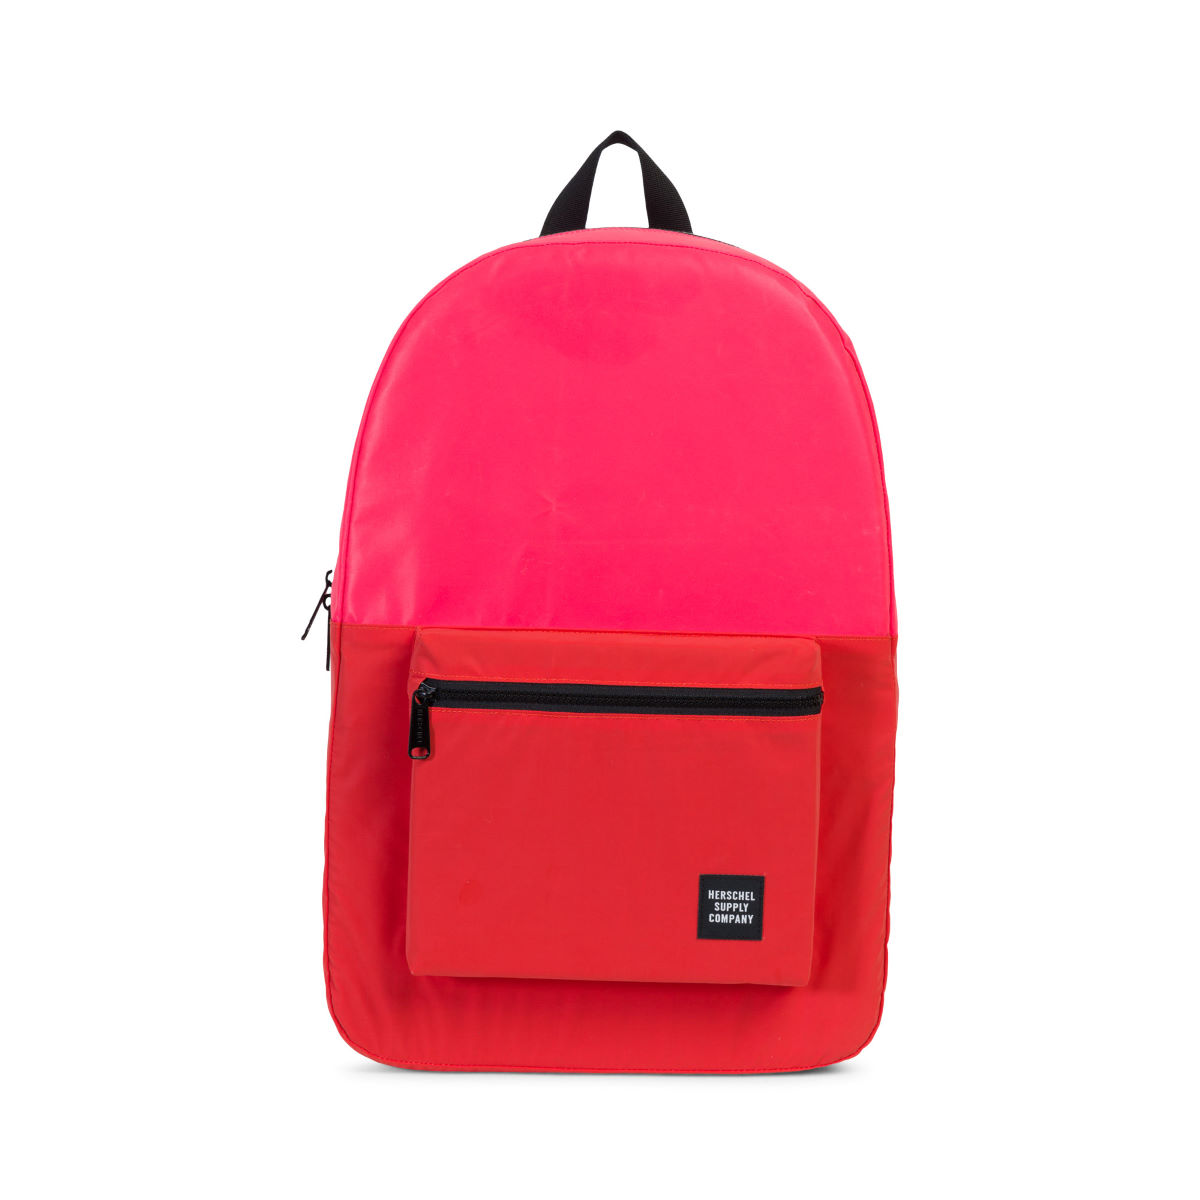 Image of Sac à dos Herschel (repliable) - One Size Neon Pink/Red | Sacs à dos